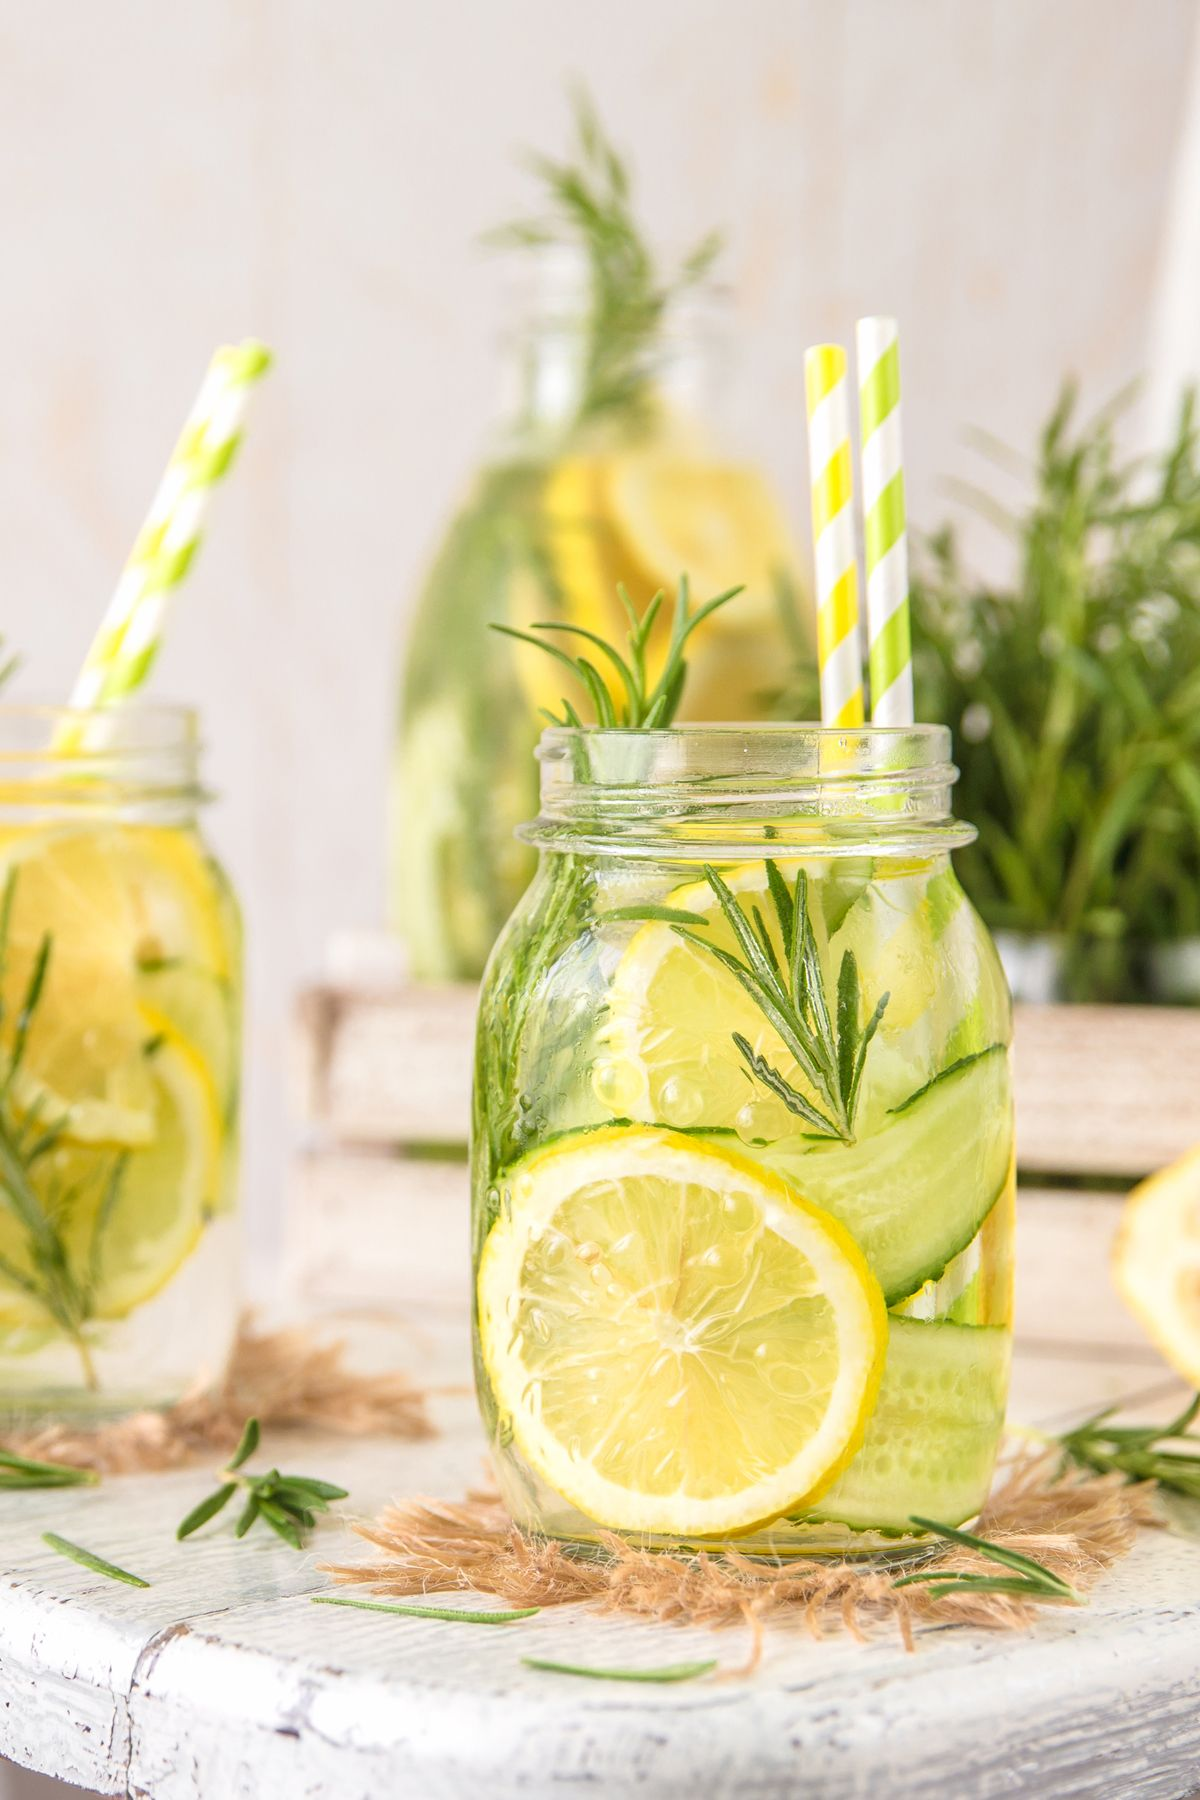 Infused Detox Water with with lemon, cucumber and rosemary